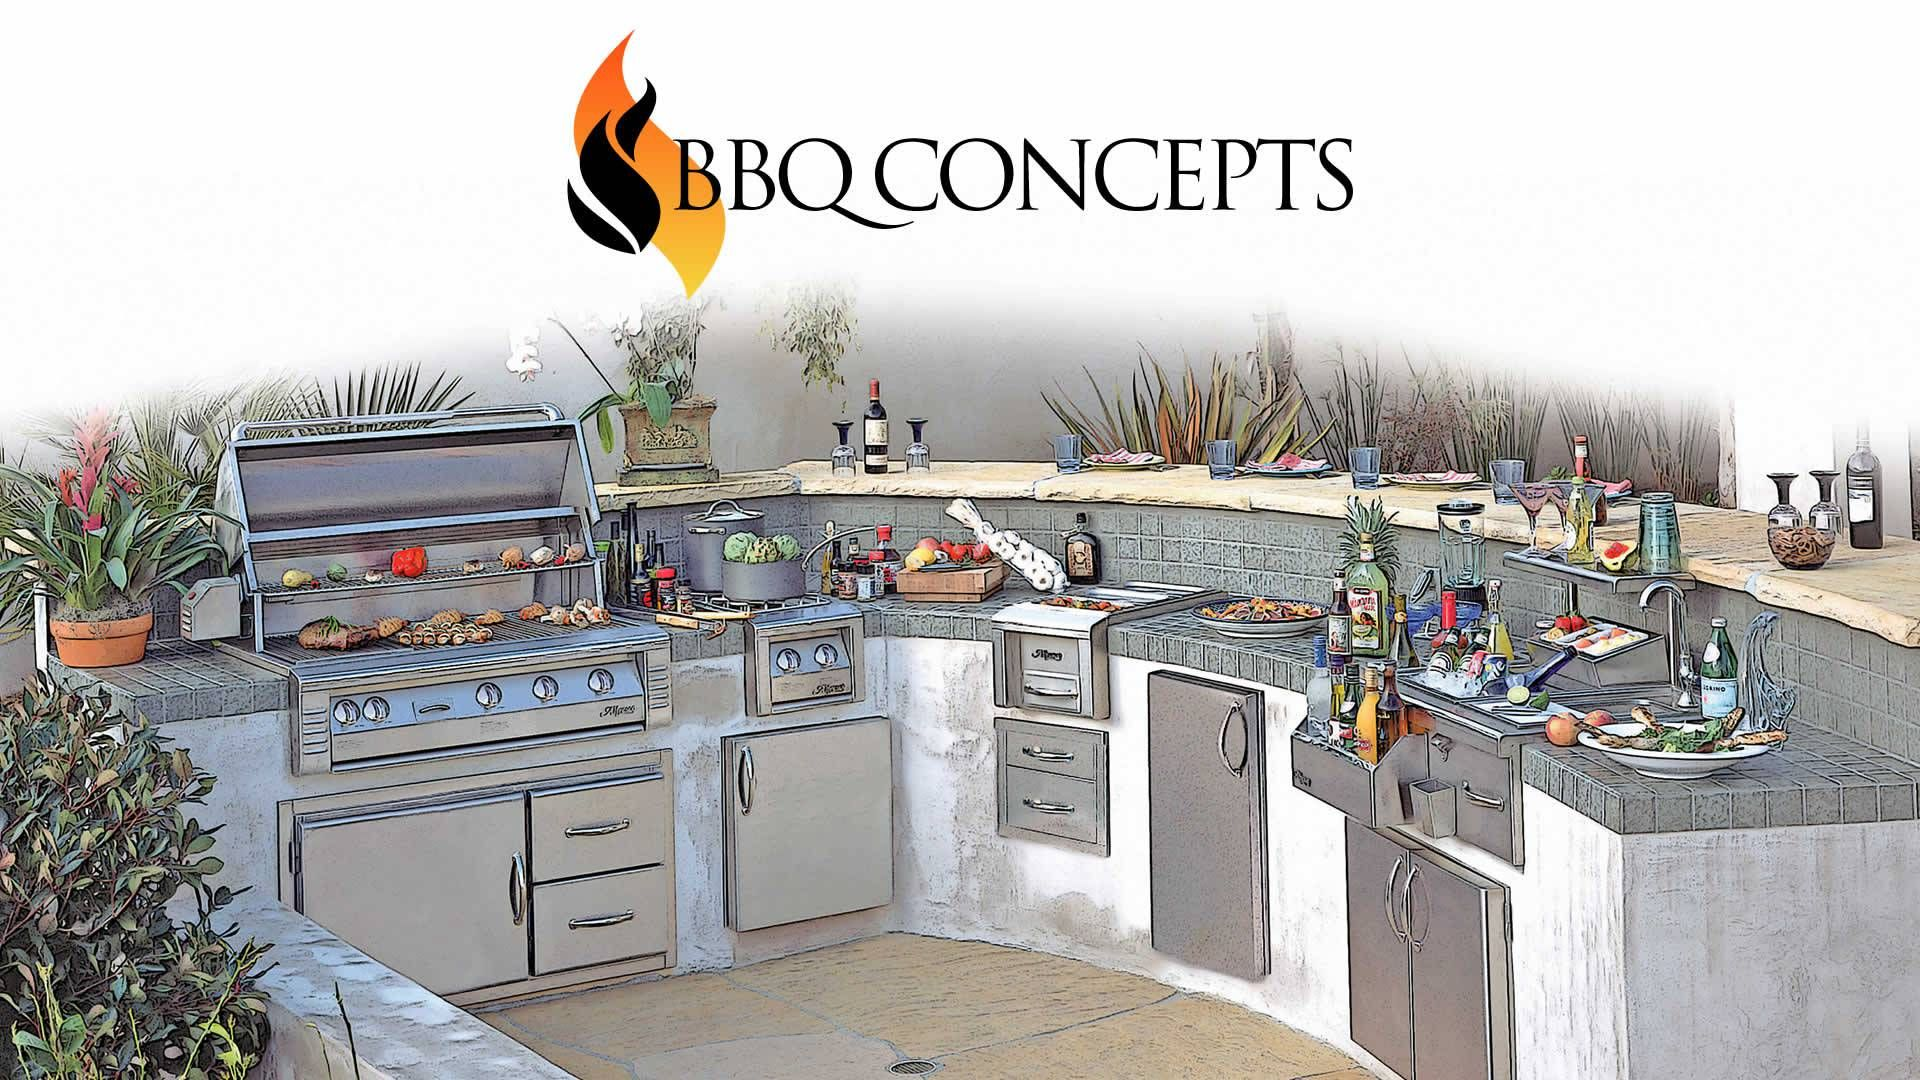 Of Las Vegas With Images Outdoor Kitchen Design